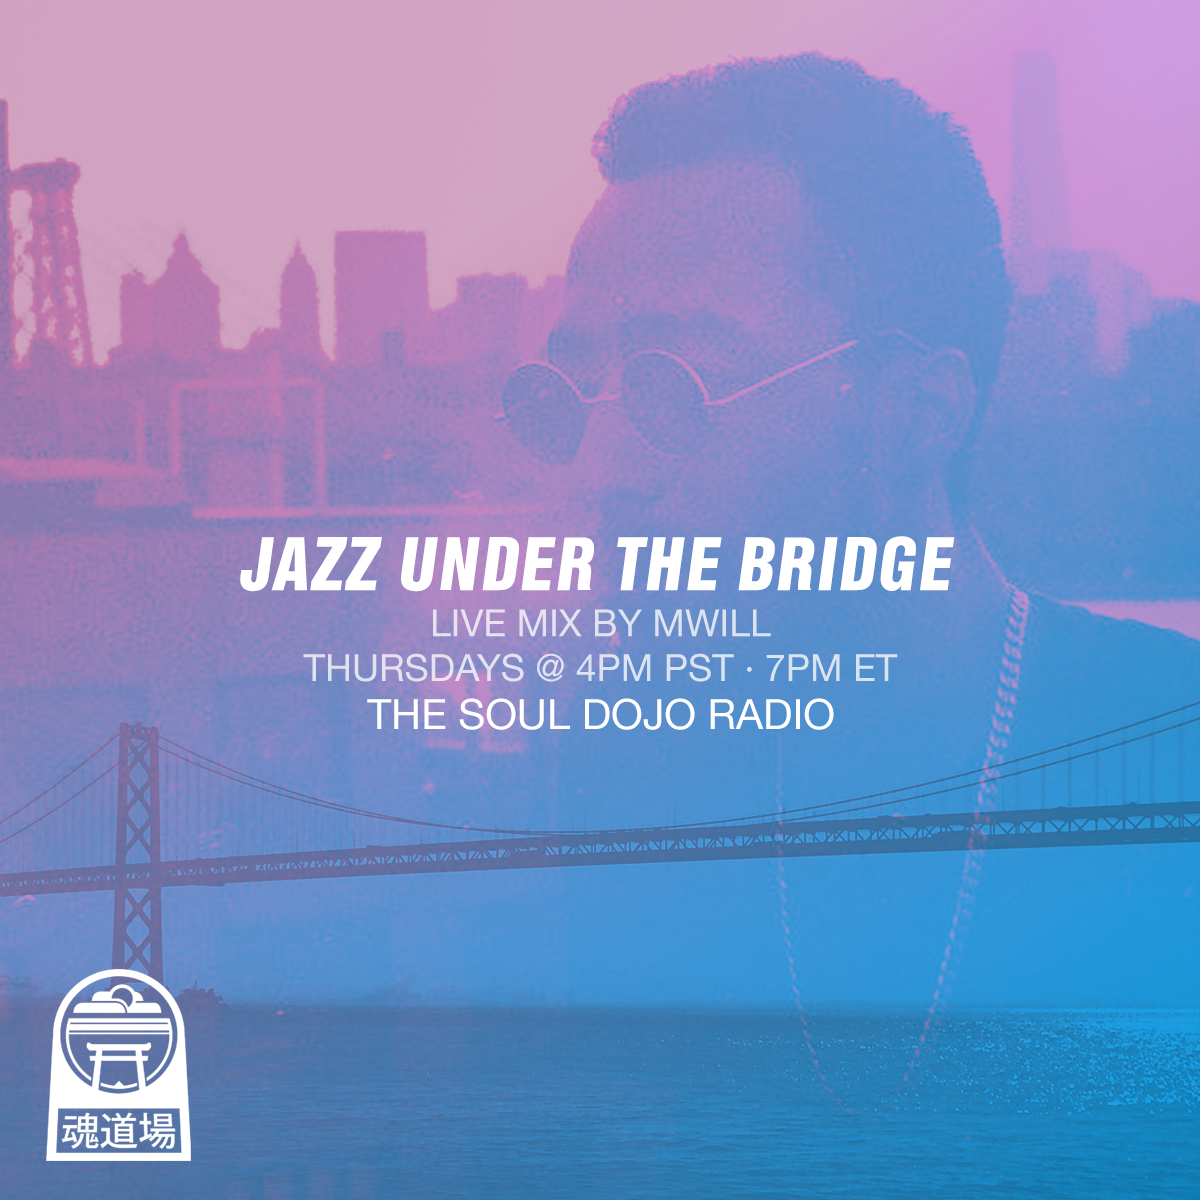 Jazz Under The Bridge - MWill takes us on a journey of jazz inspired sounds every Thursday @ 4pm PST on The Soul Dojo Radio